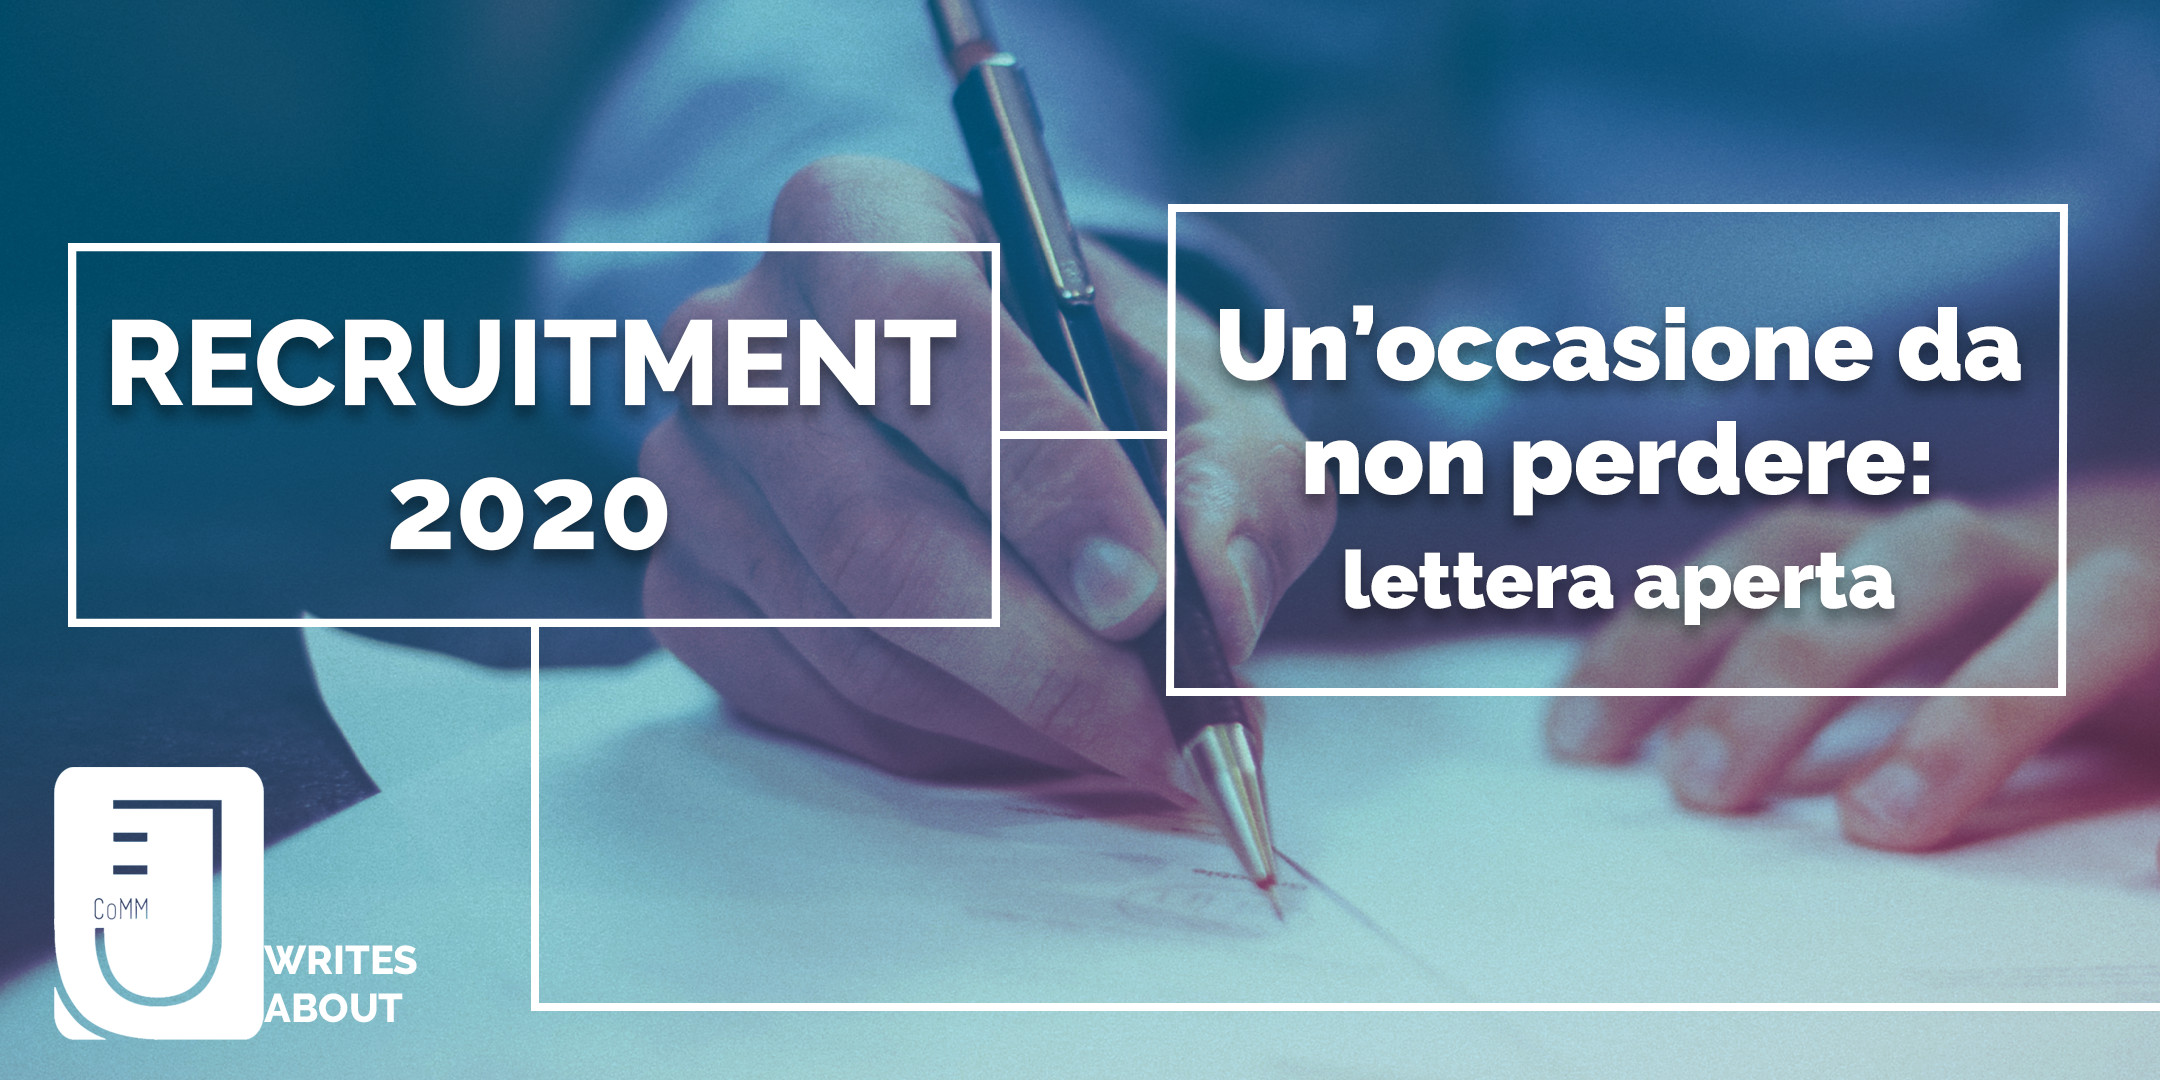 Fall Recruitment JECoMM 2020: un'occasione da non perdere.